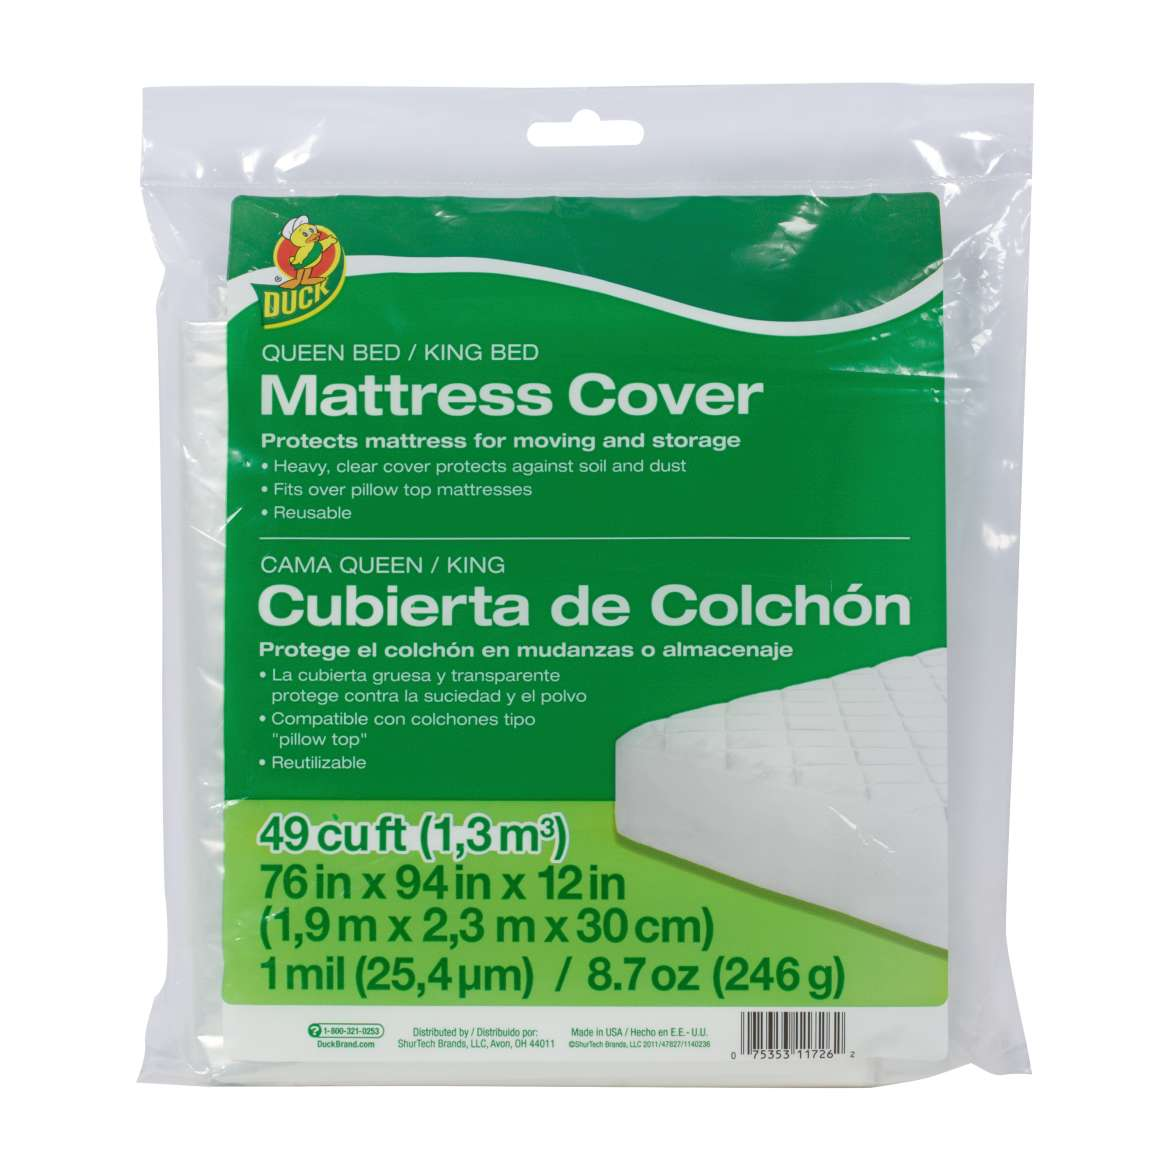 Queen/King Bed Mattress Cover Image